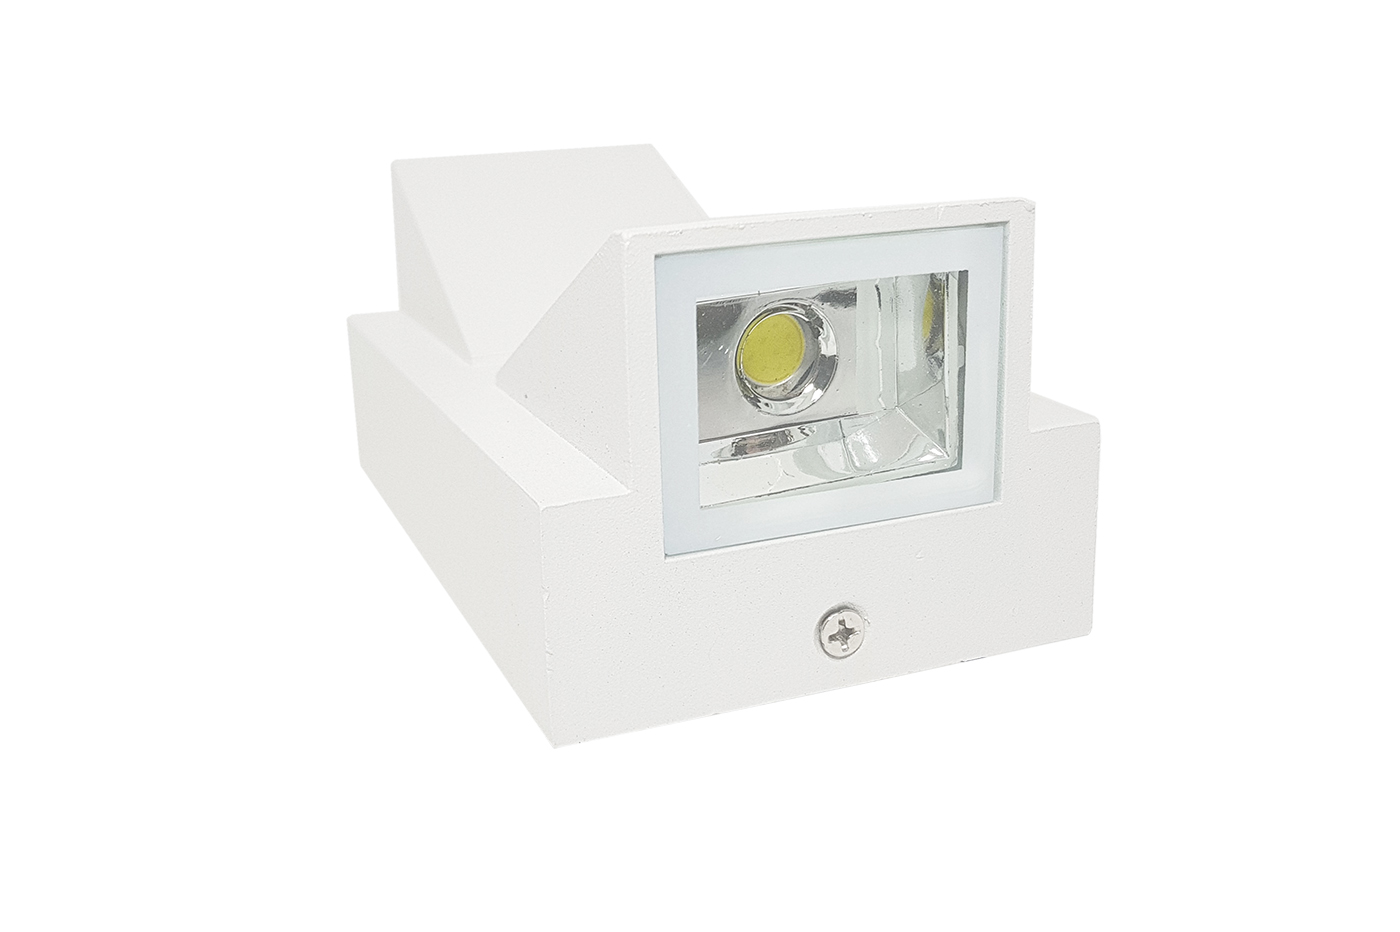 Bes applique beselettronica applique led w bianco